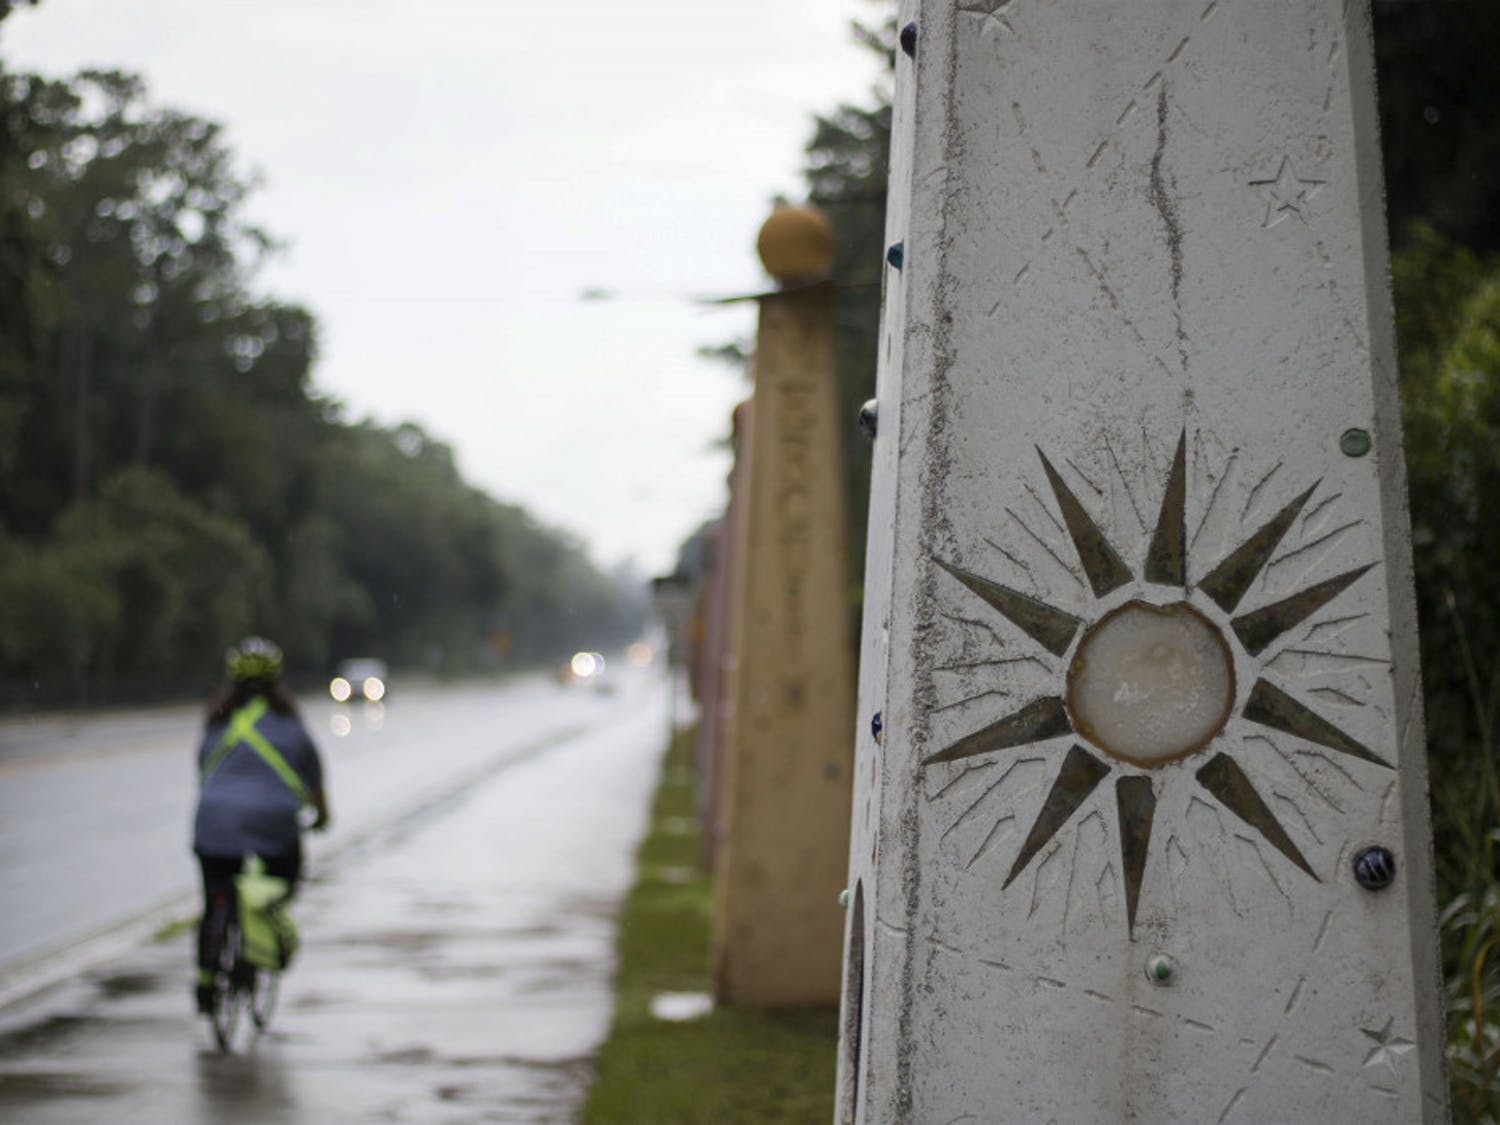 A biker passes by the statues Wednesday evening for Gainesville Solar Walk, a four billion to one scale model of the solar system located along NW 8th Avenue.